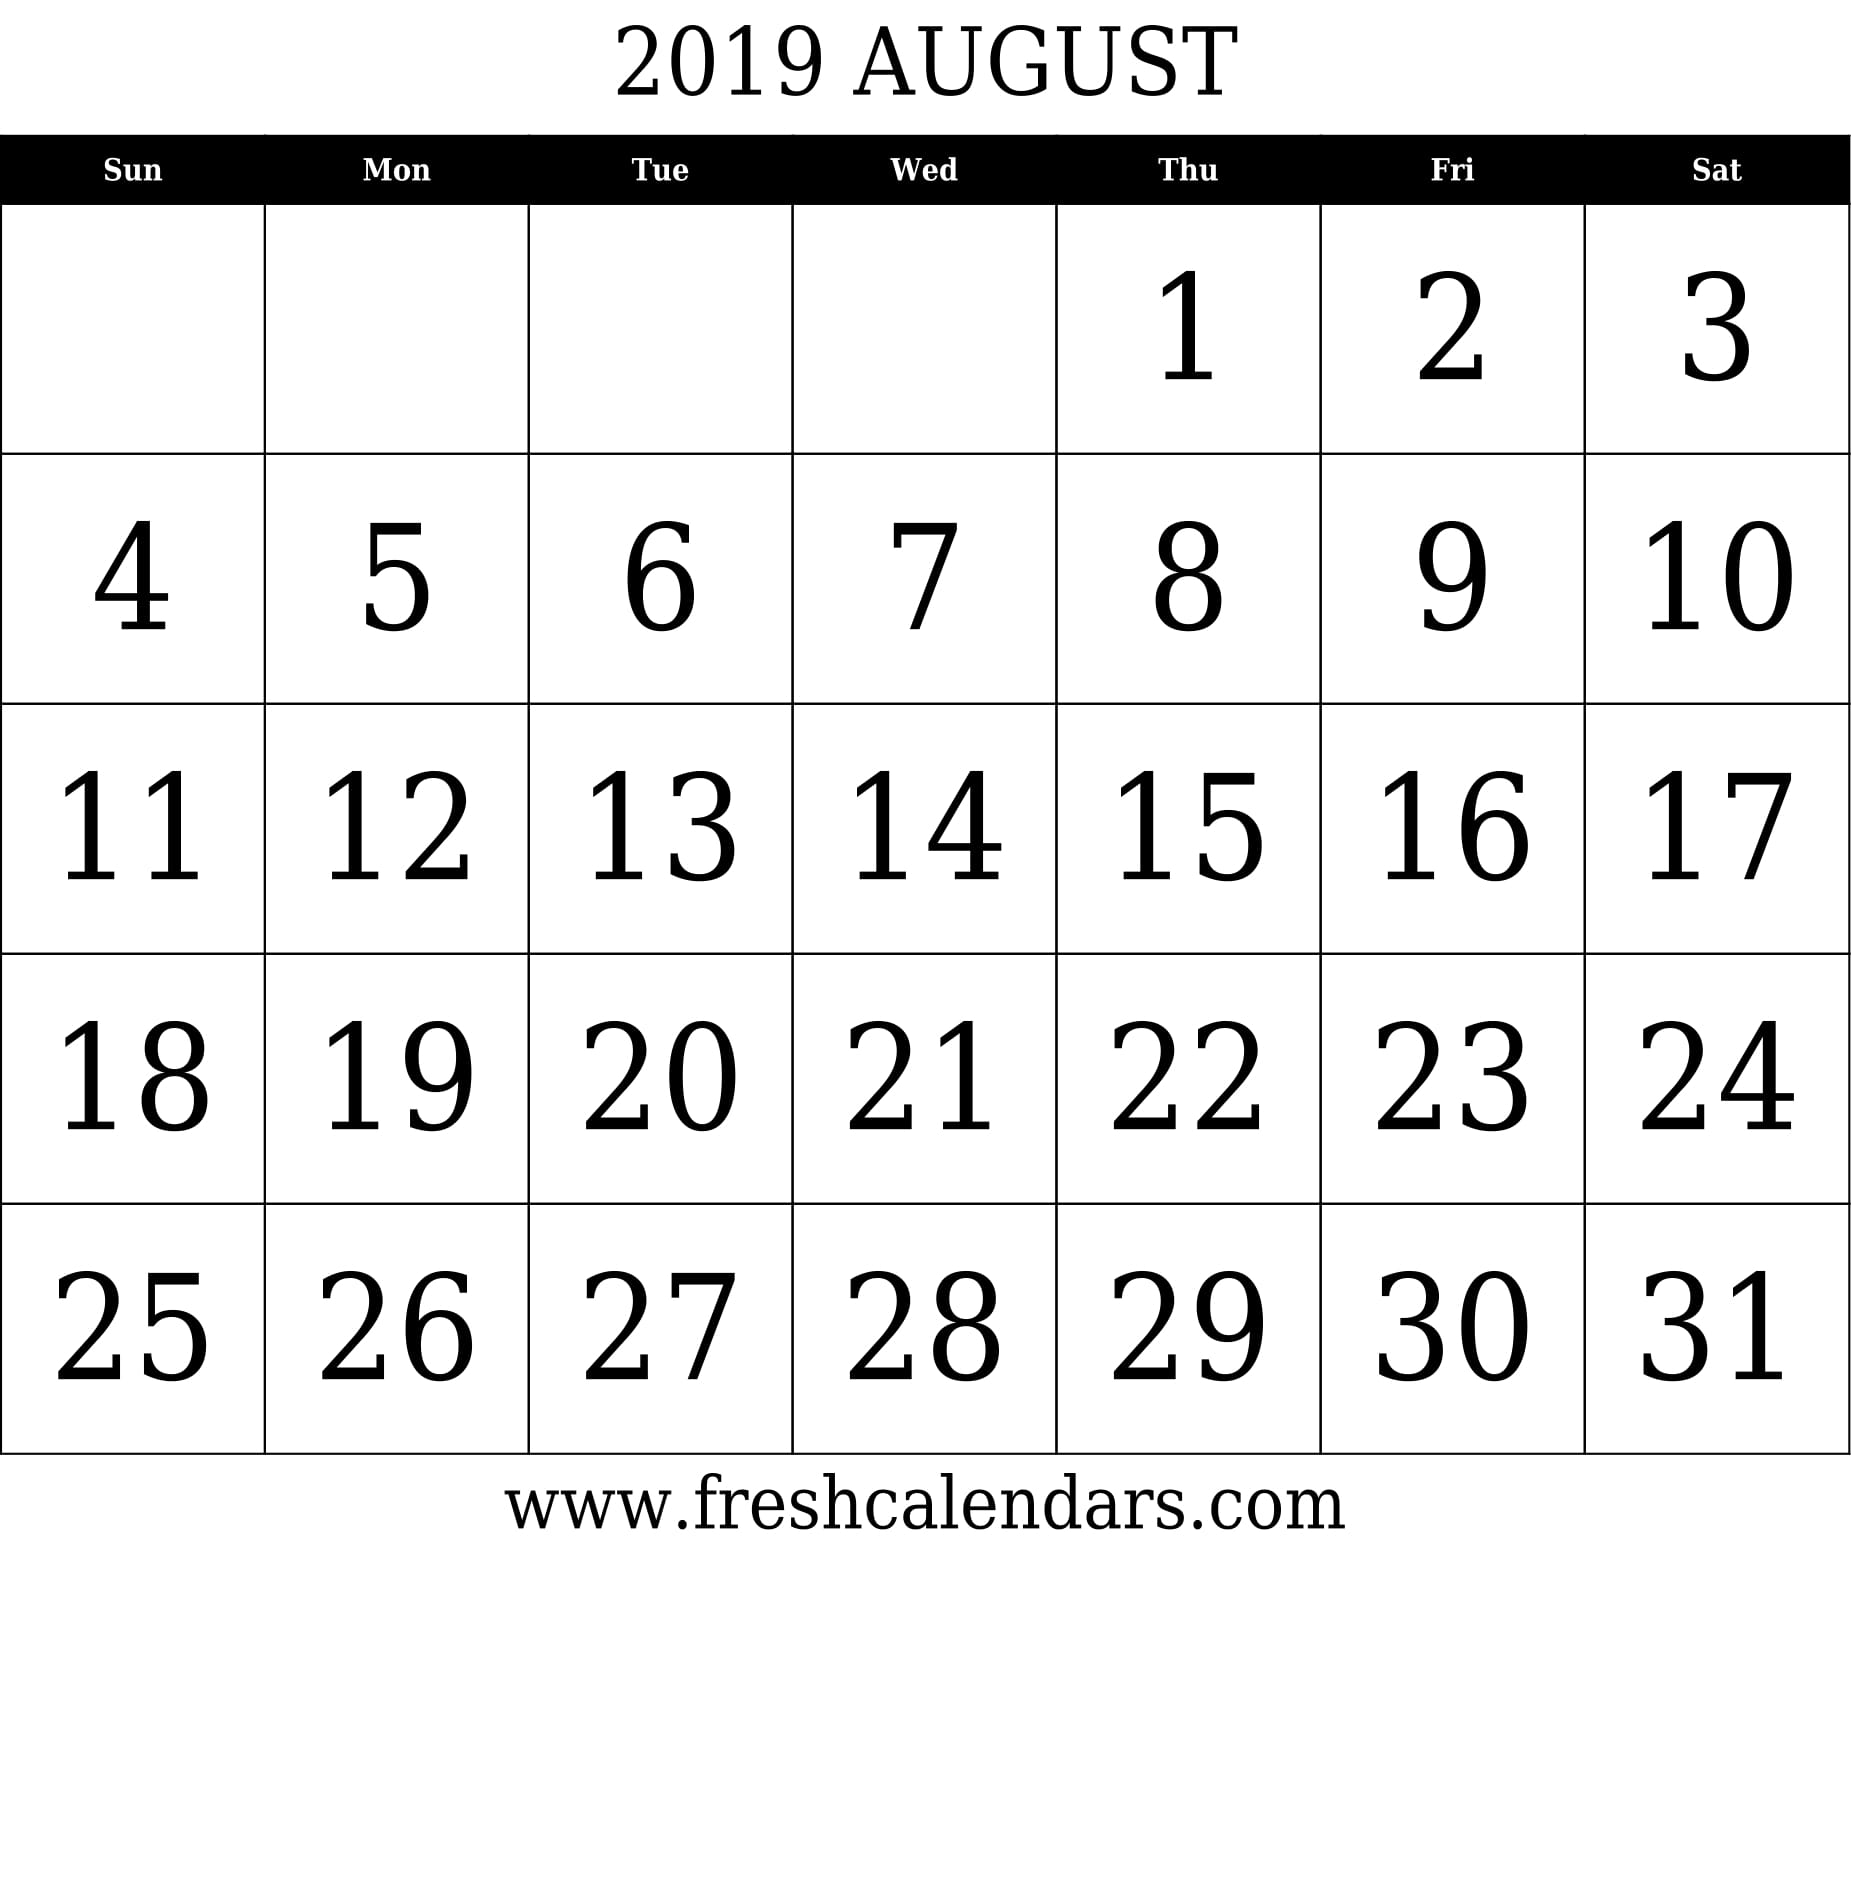 August 2019 Calendar With Large Dates